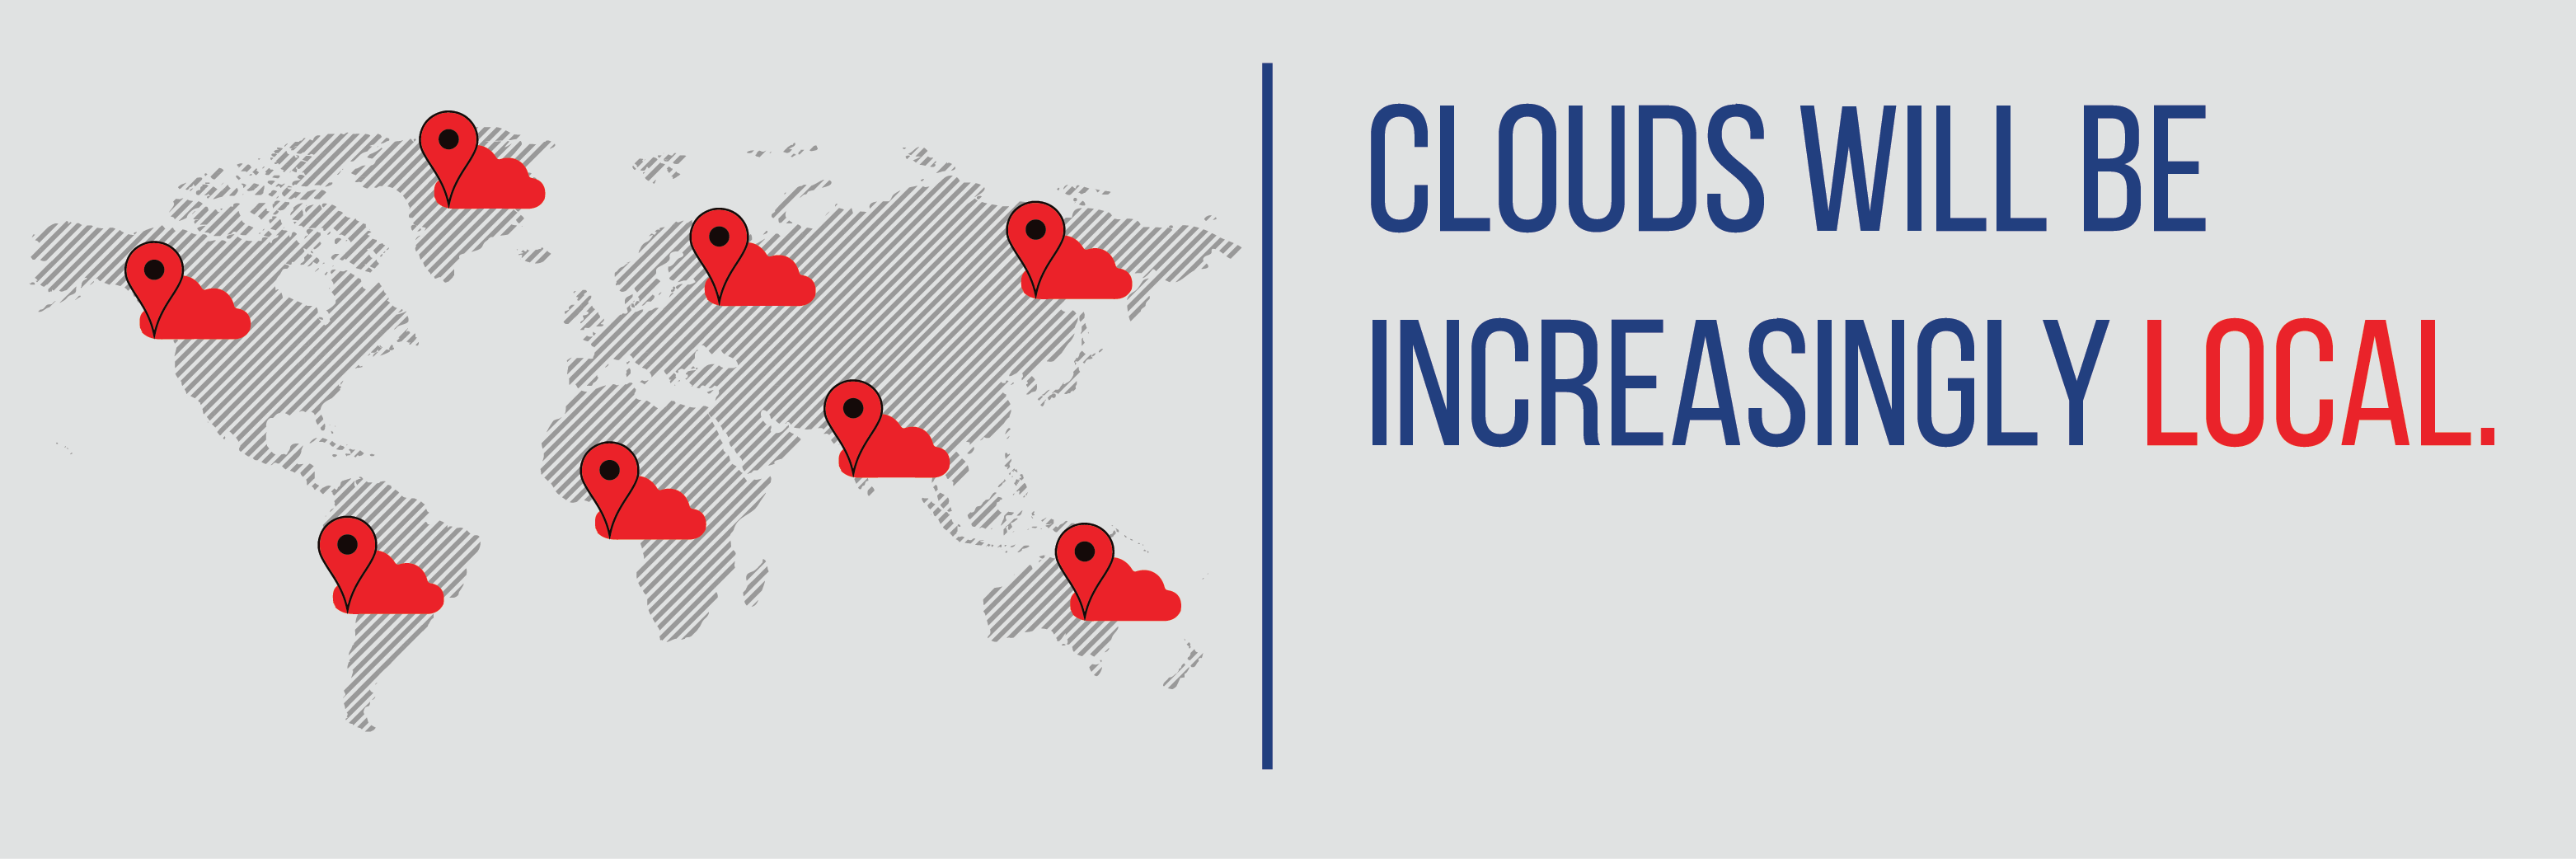 Clouds will be increasingly local